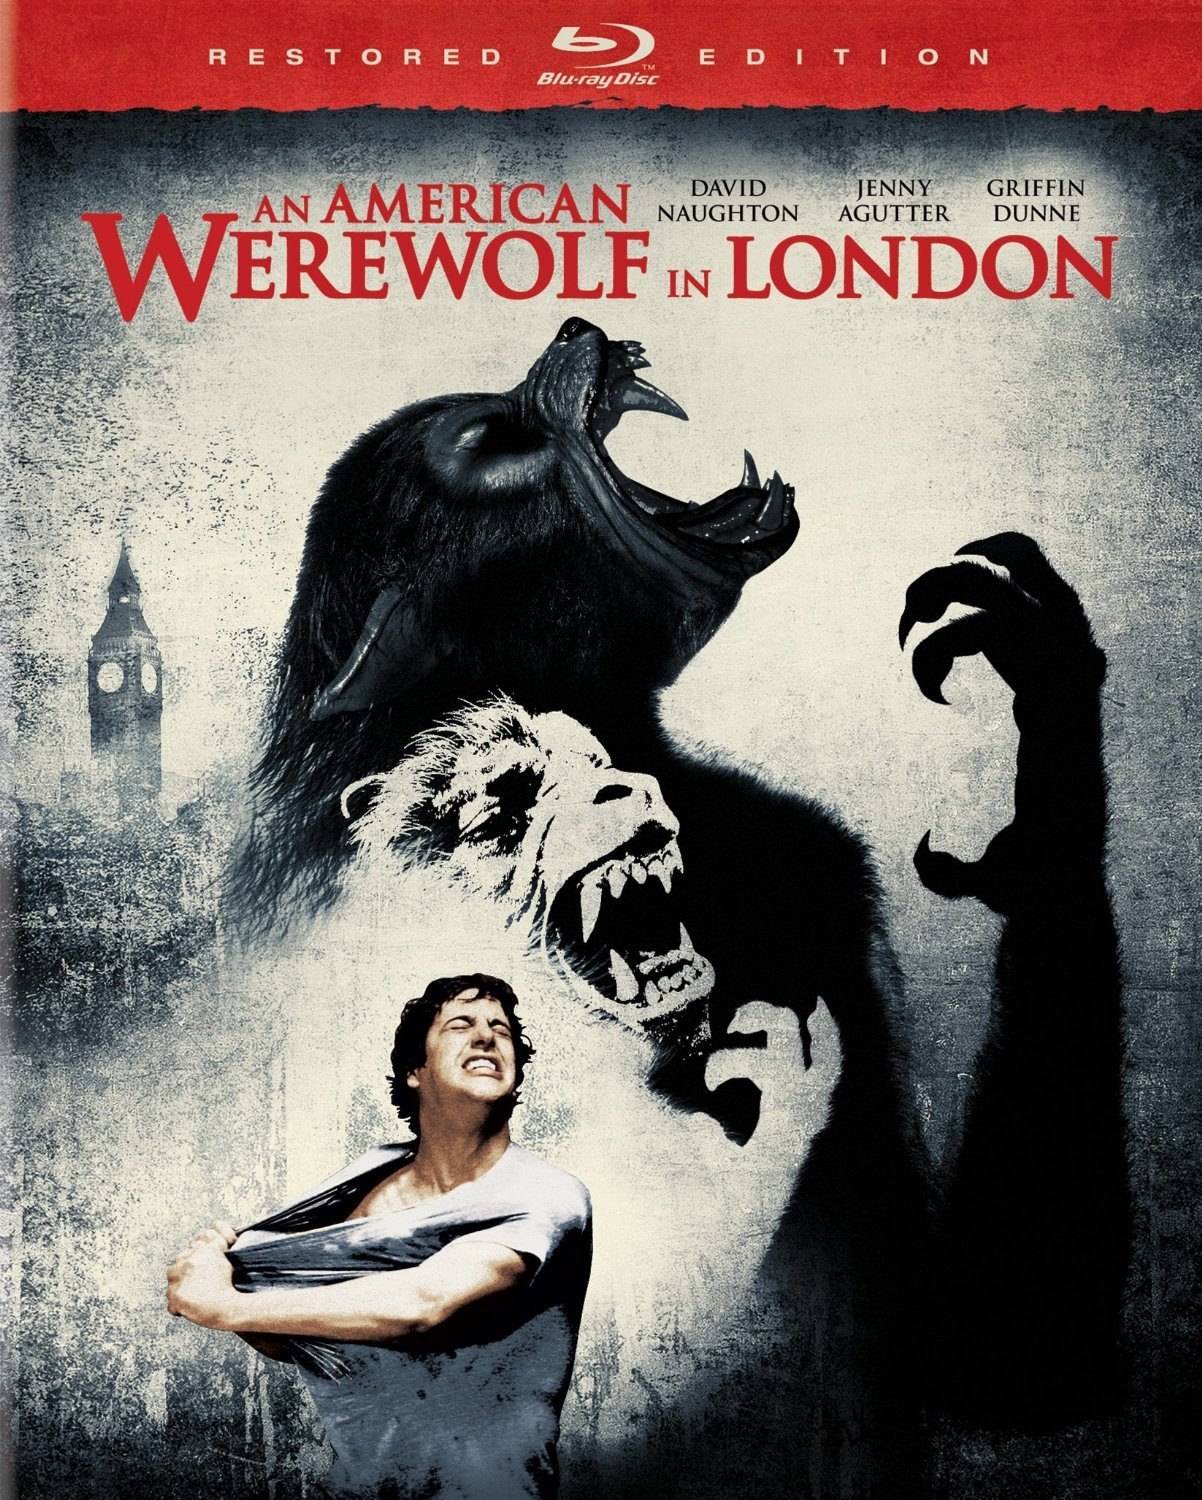 An American Werewolf in London Restored Blu-Ray